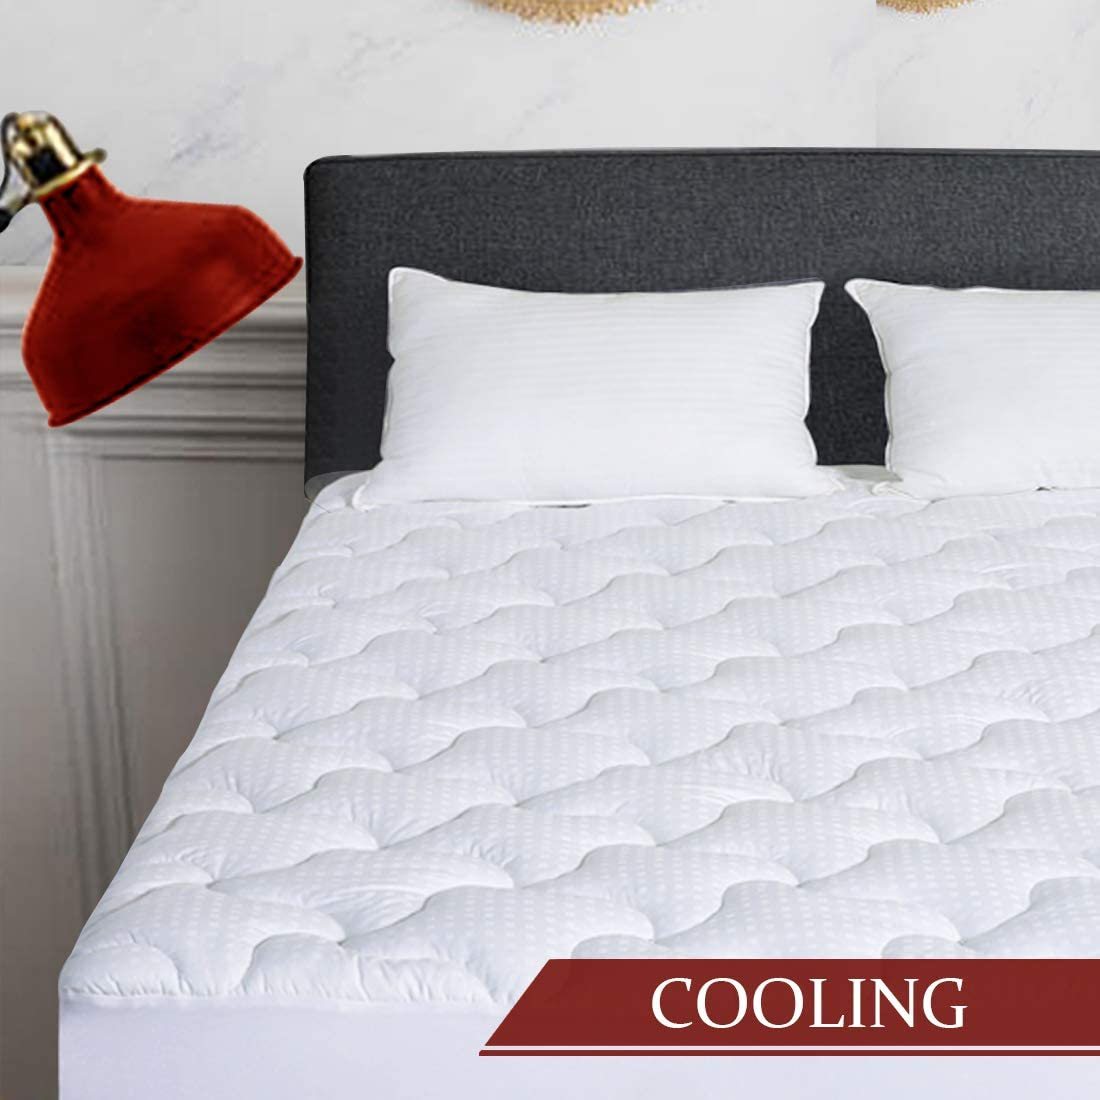 INGALIK Mattress Pad King Size Cotton Mattress Topper Cooling Mattress Pad Cover Pillow Top (8-21Inch Deep Pocket Down Alternative)